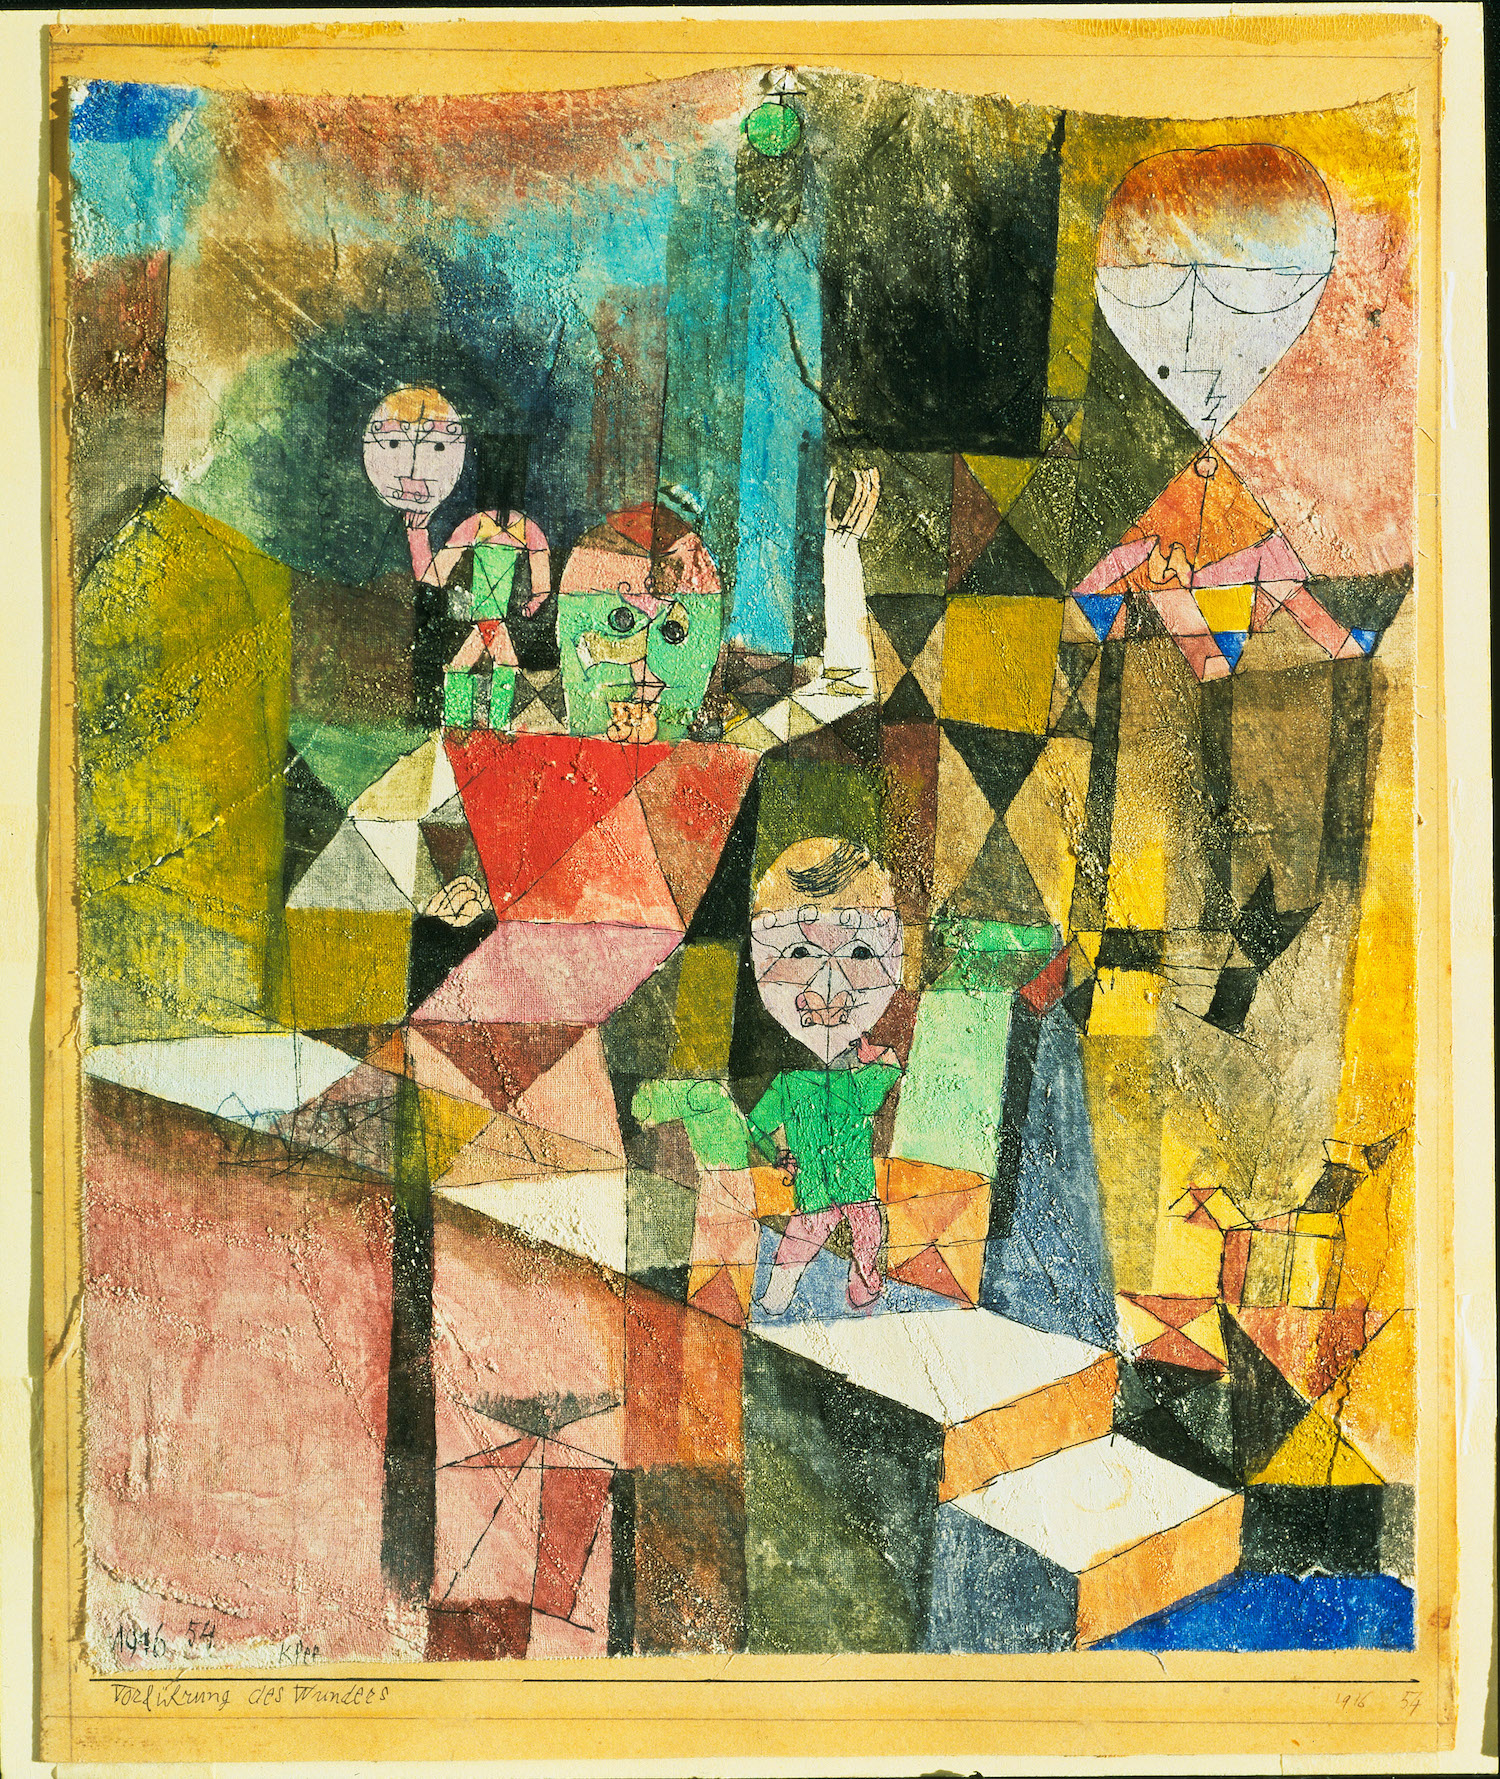 Klee, Paul, Introducing the Miracle, 1916. -The Museum of Modern Art ©New York Scala Florence.